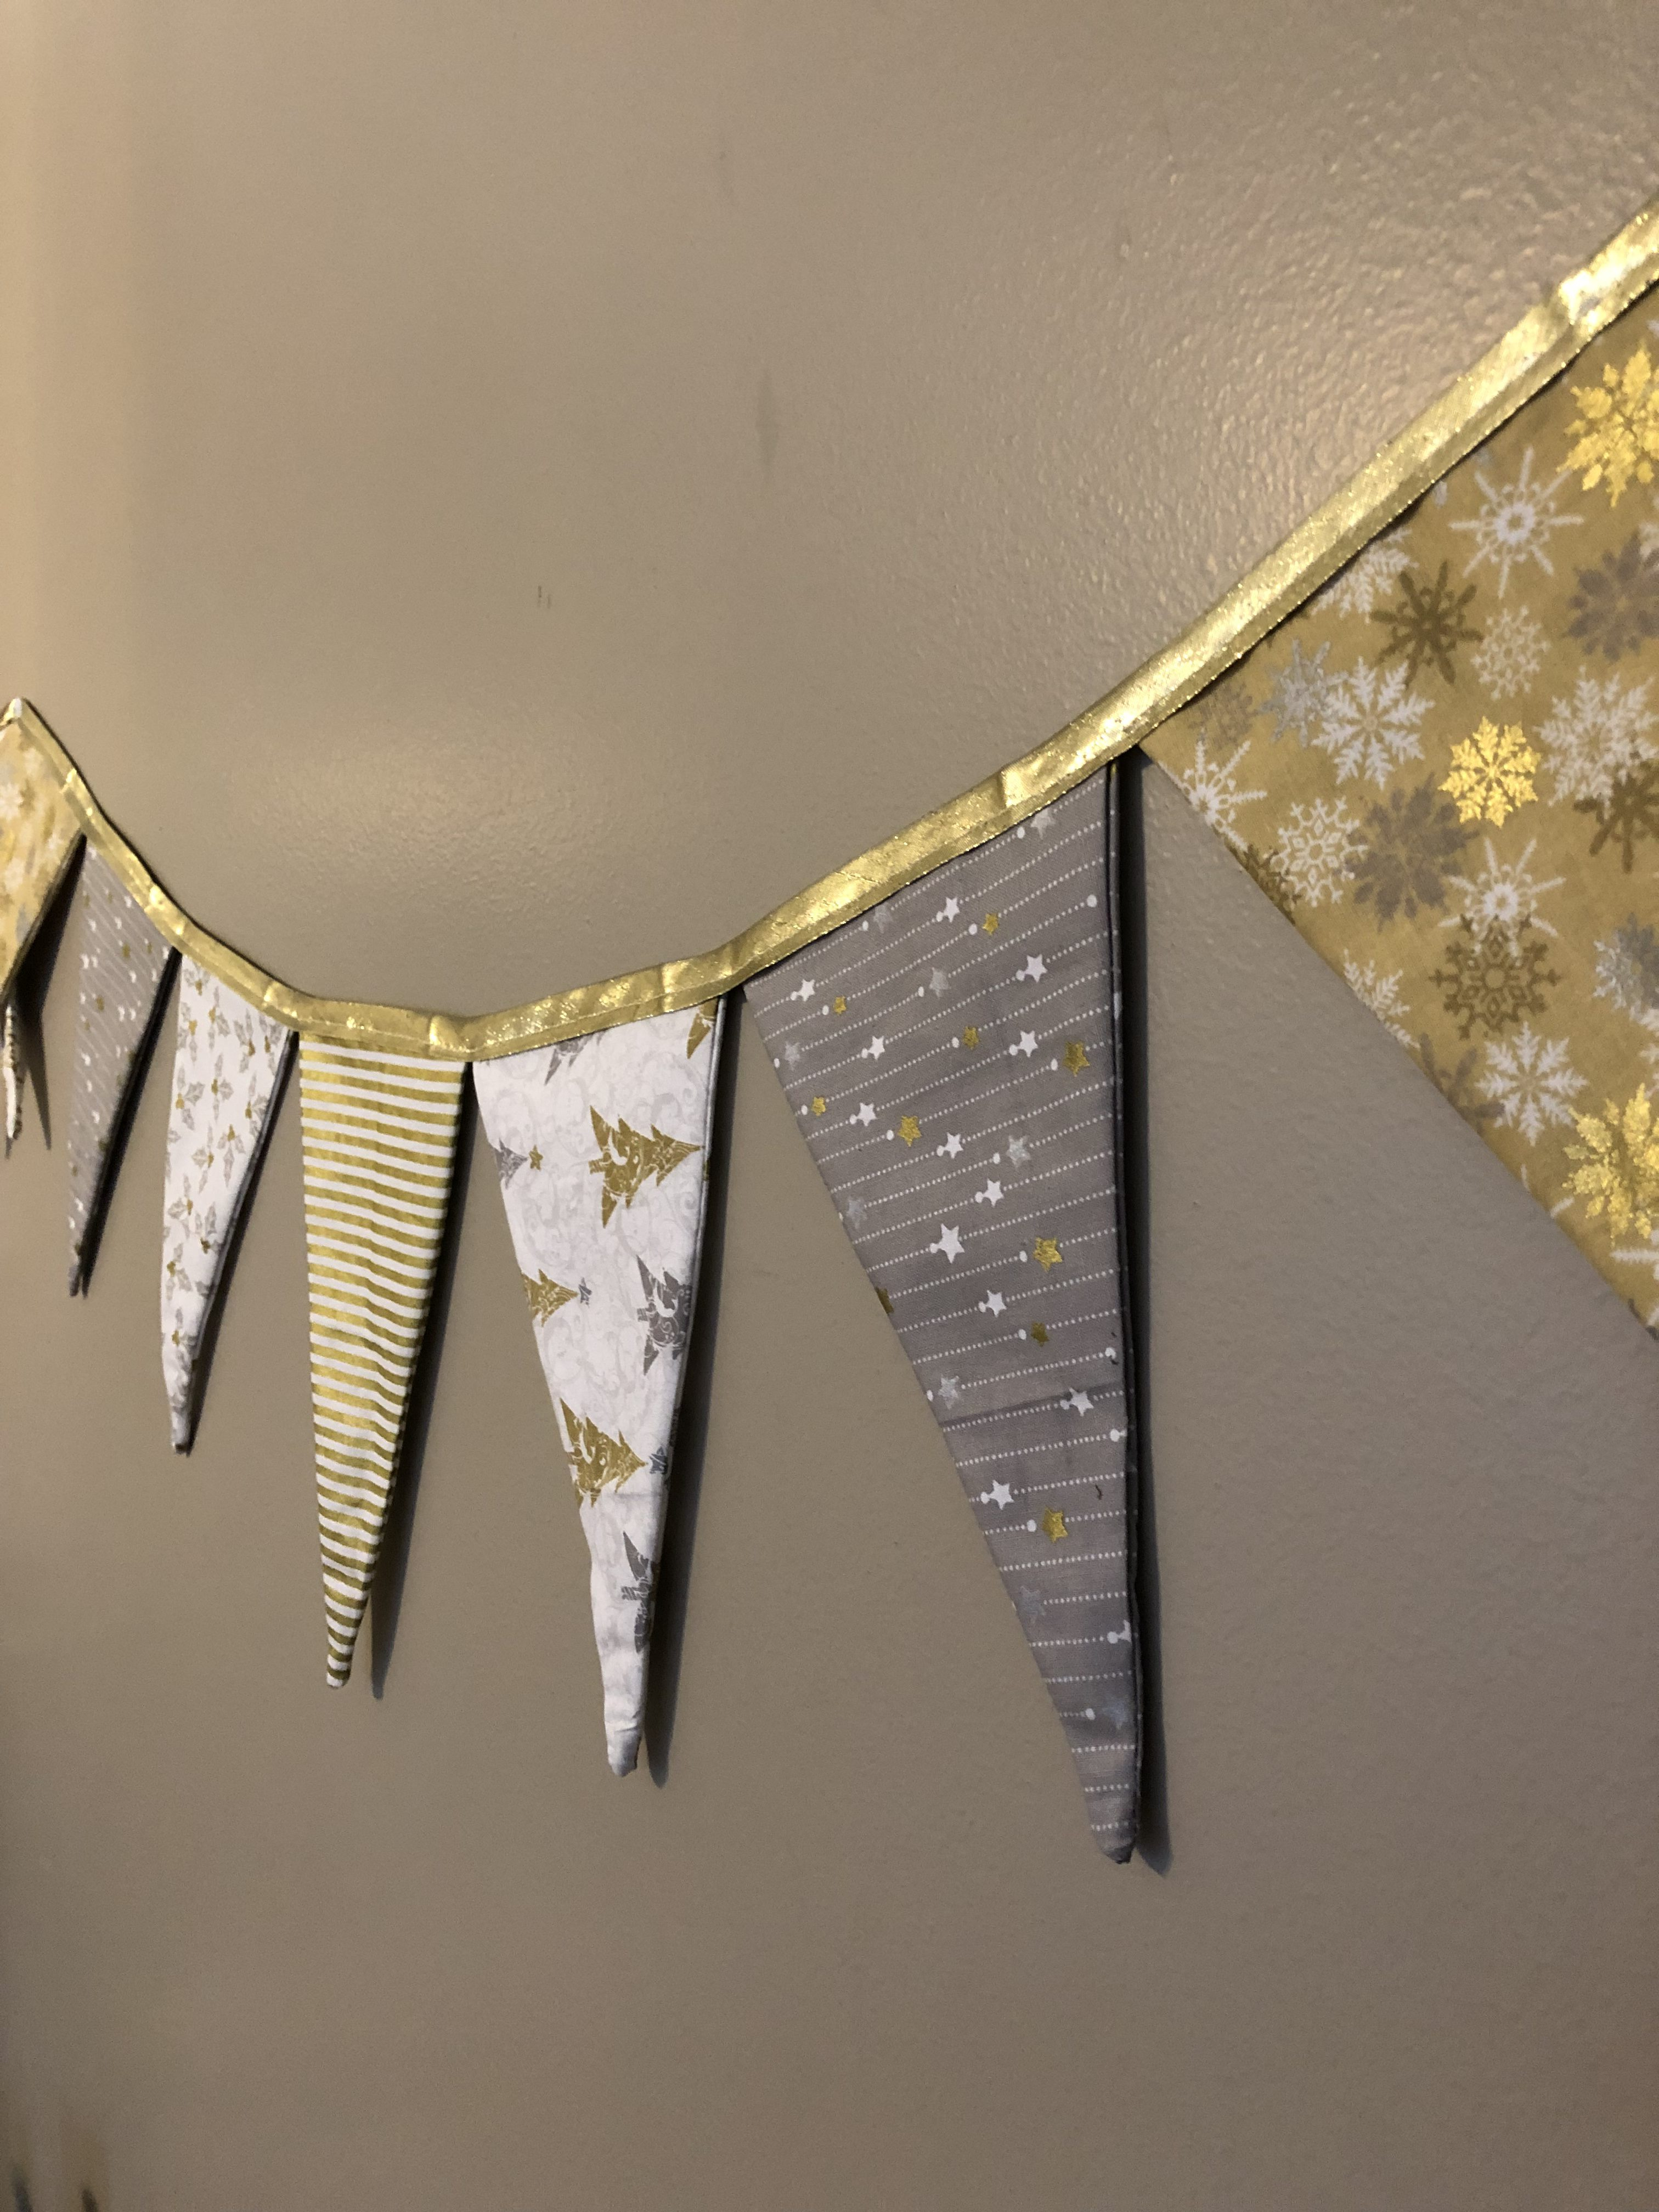 The Most Darling Christmas Triangle Fabric Banner